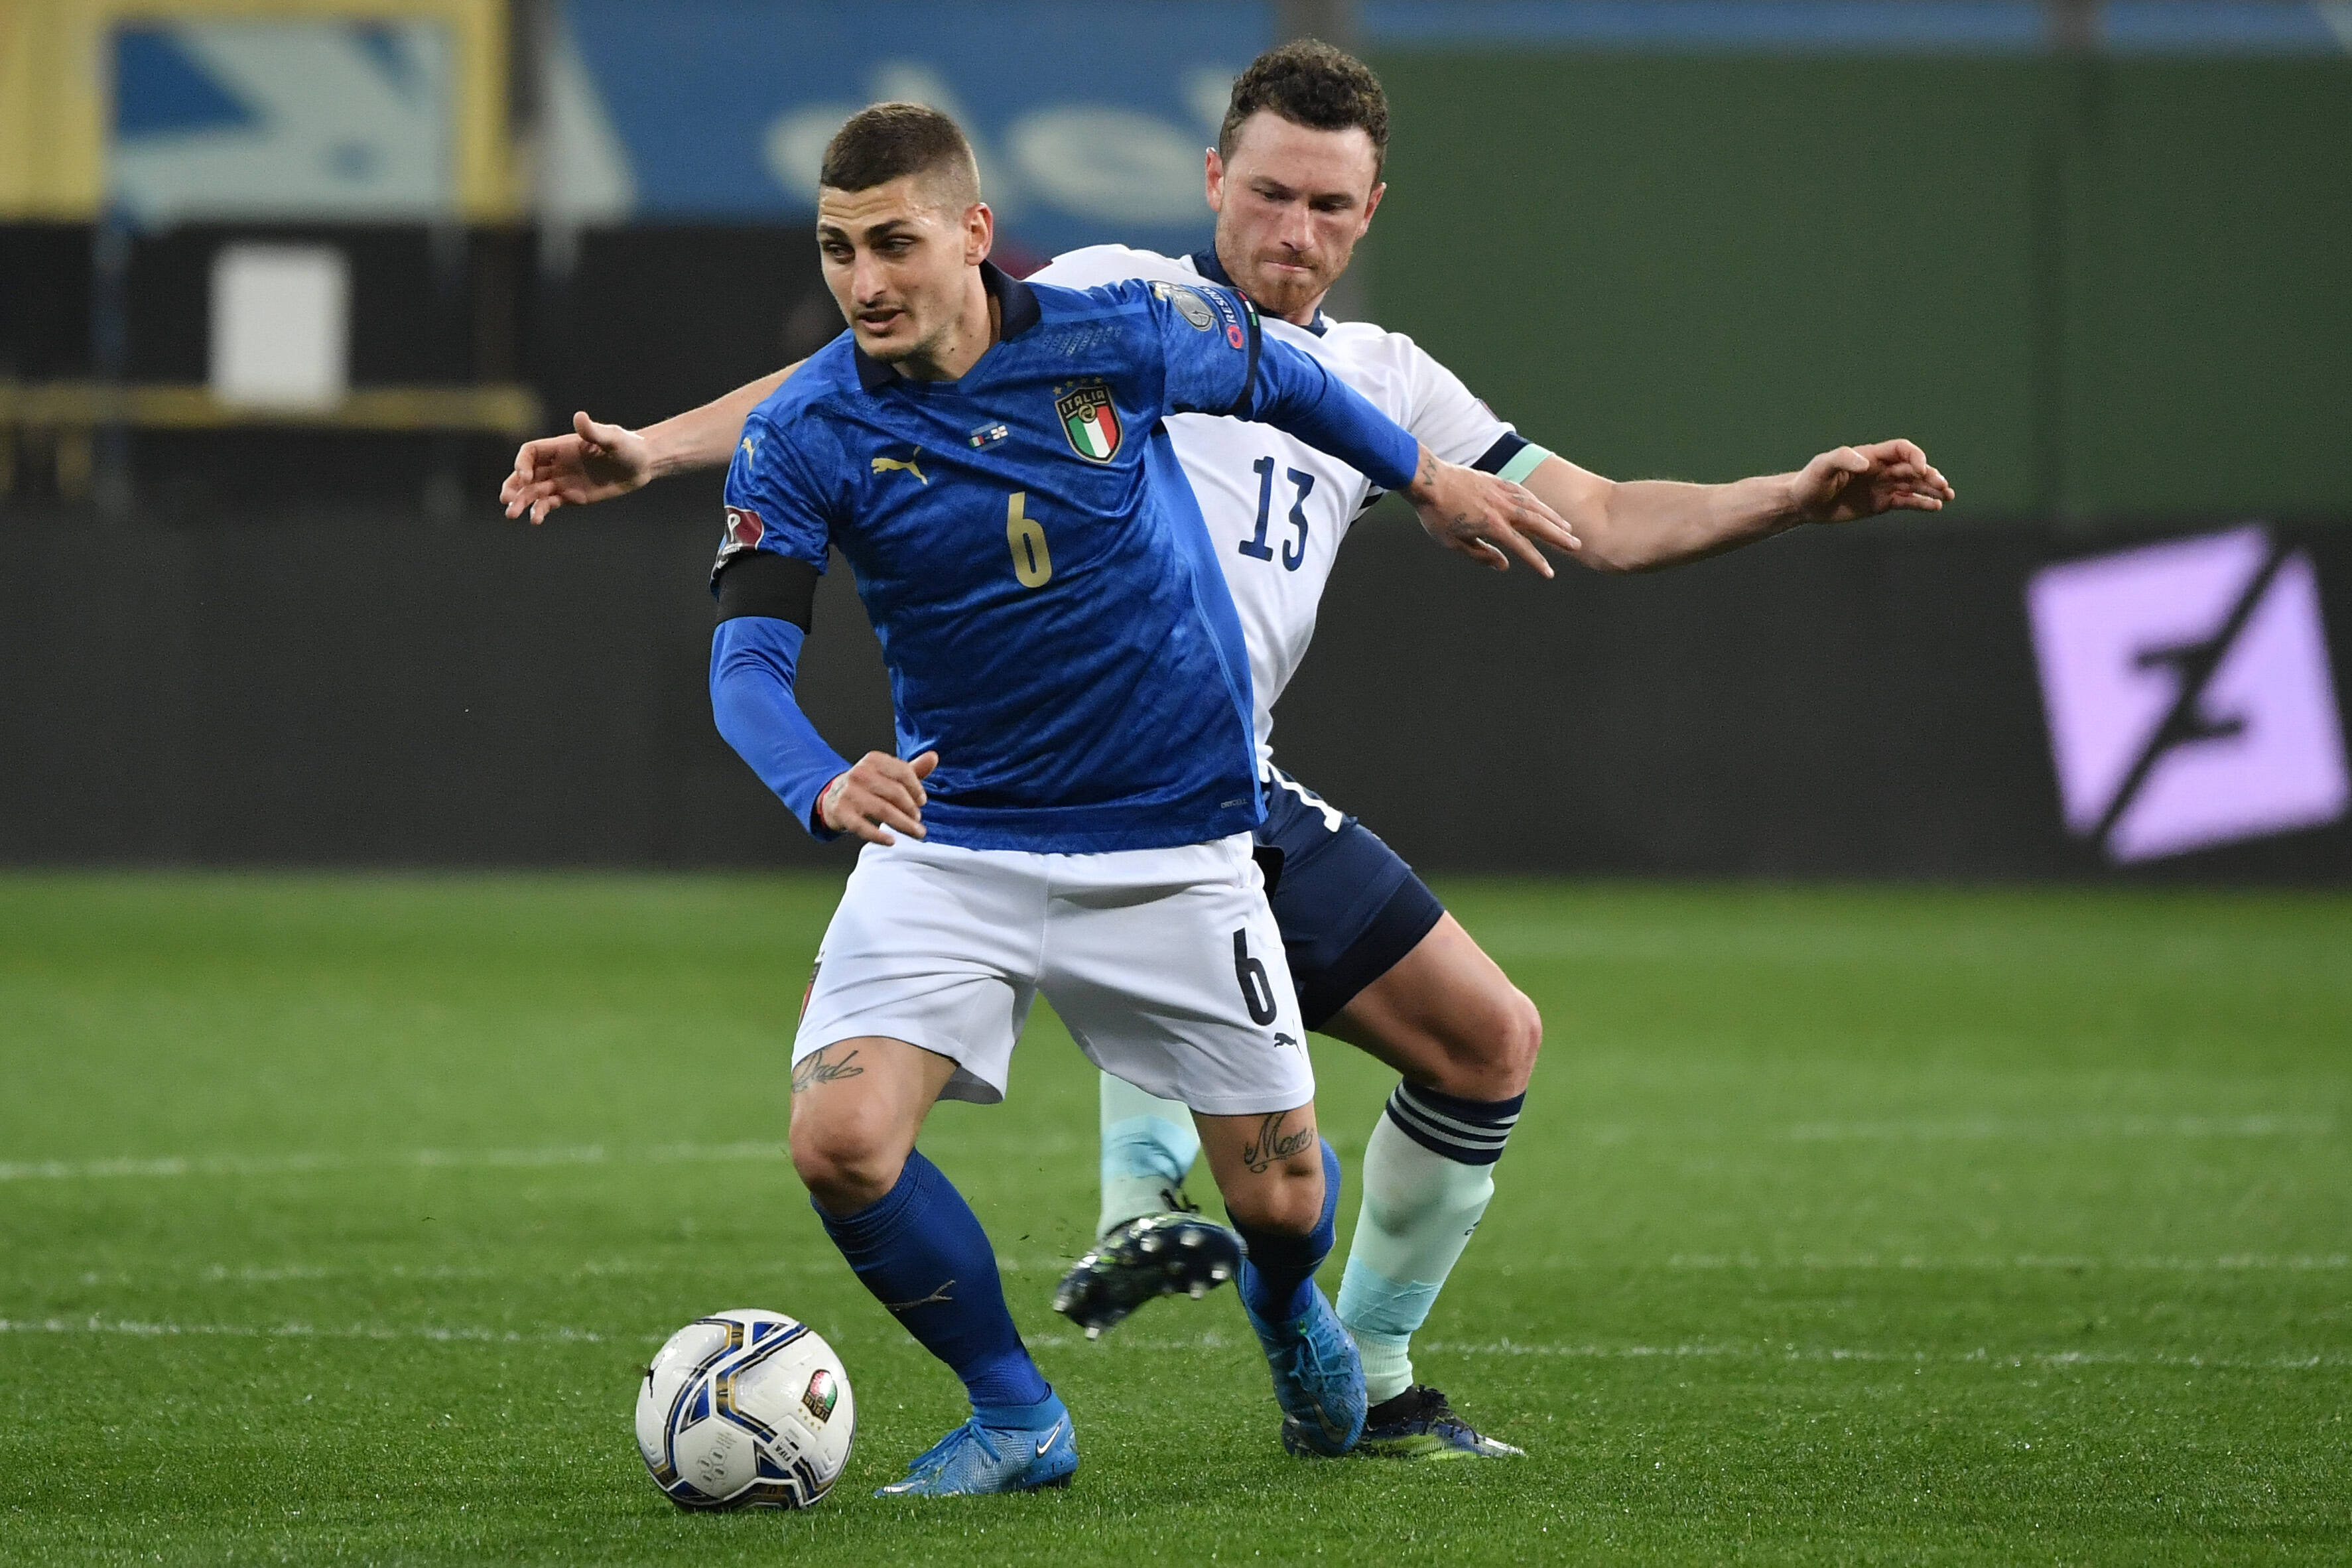 Report: Verratti Expected to Miss Italy's Euro 2020 Opener Against Turkey  Due to Injury - PSG Talk